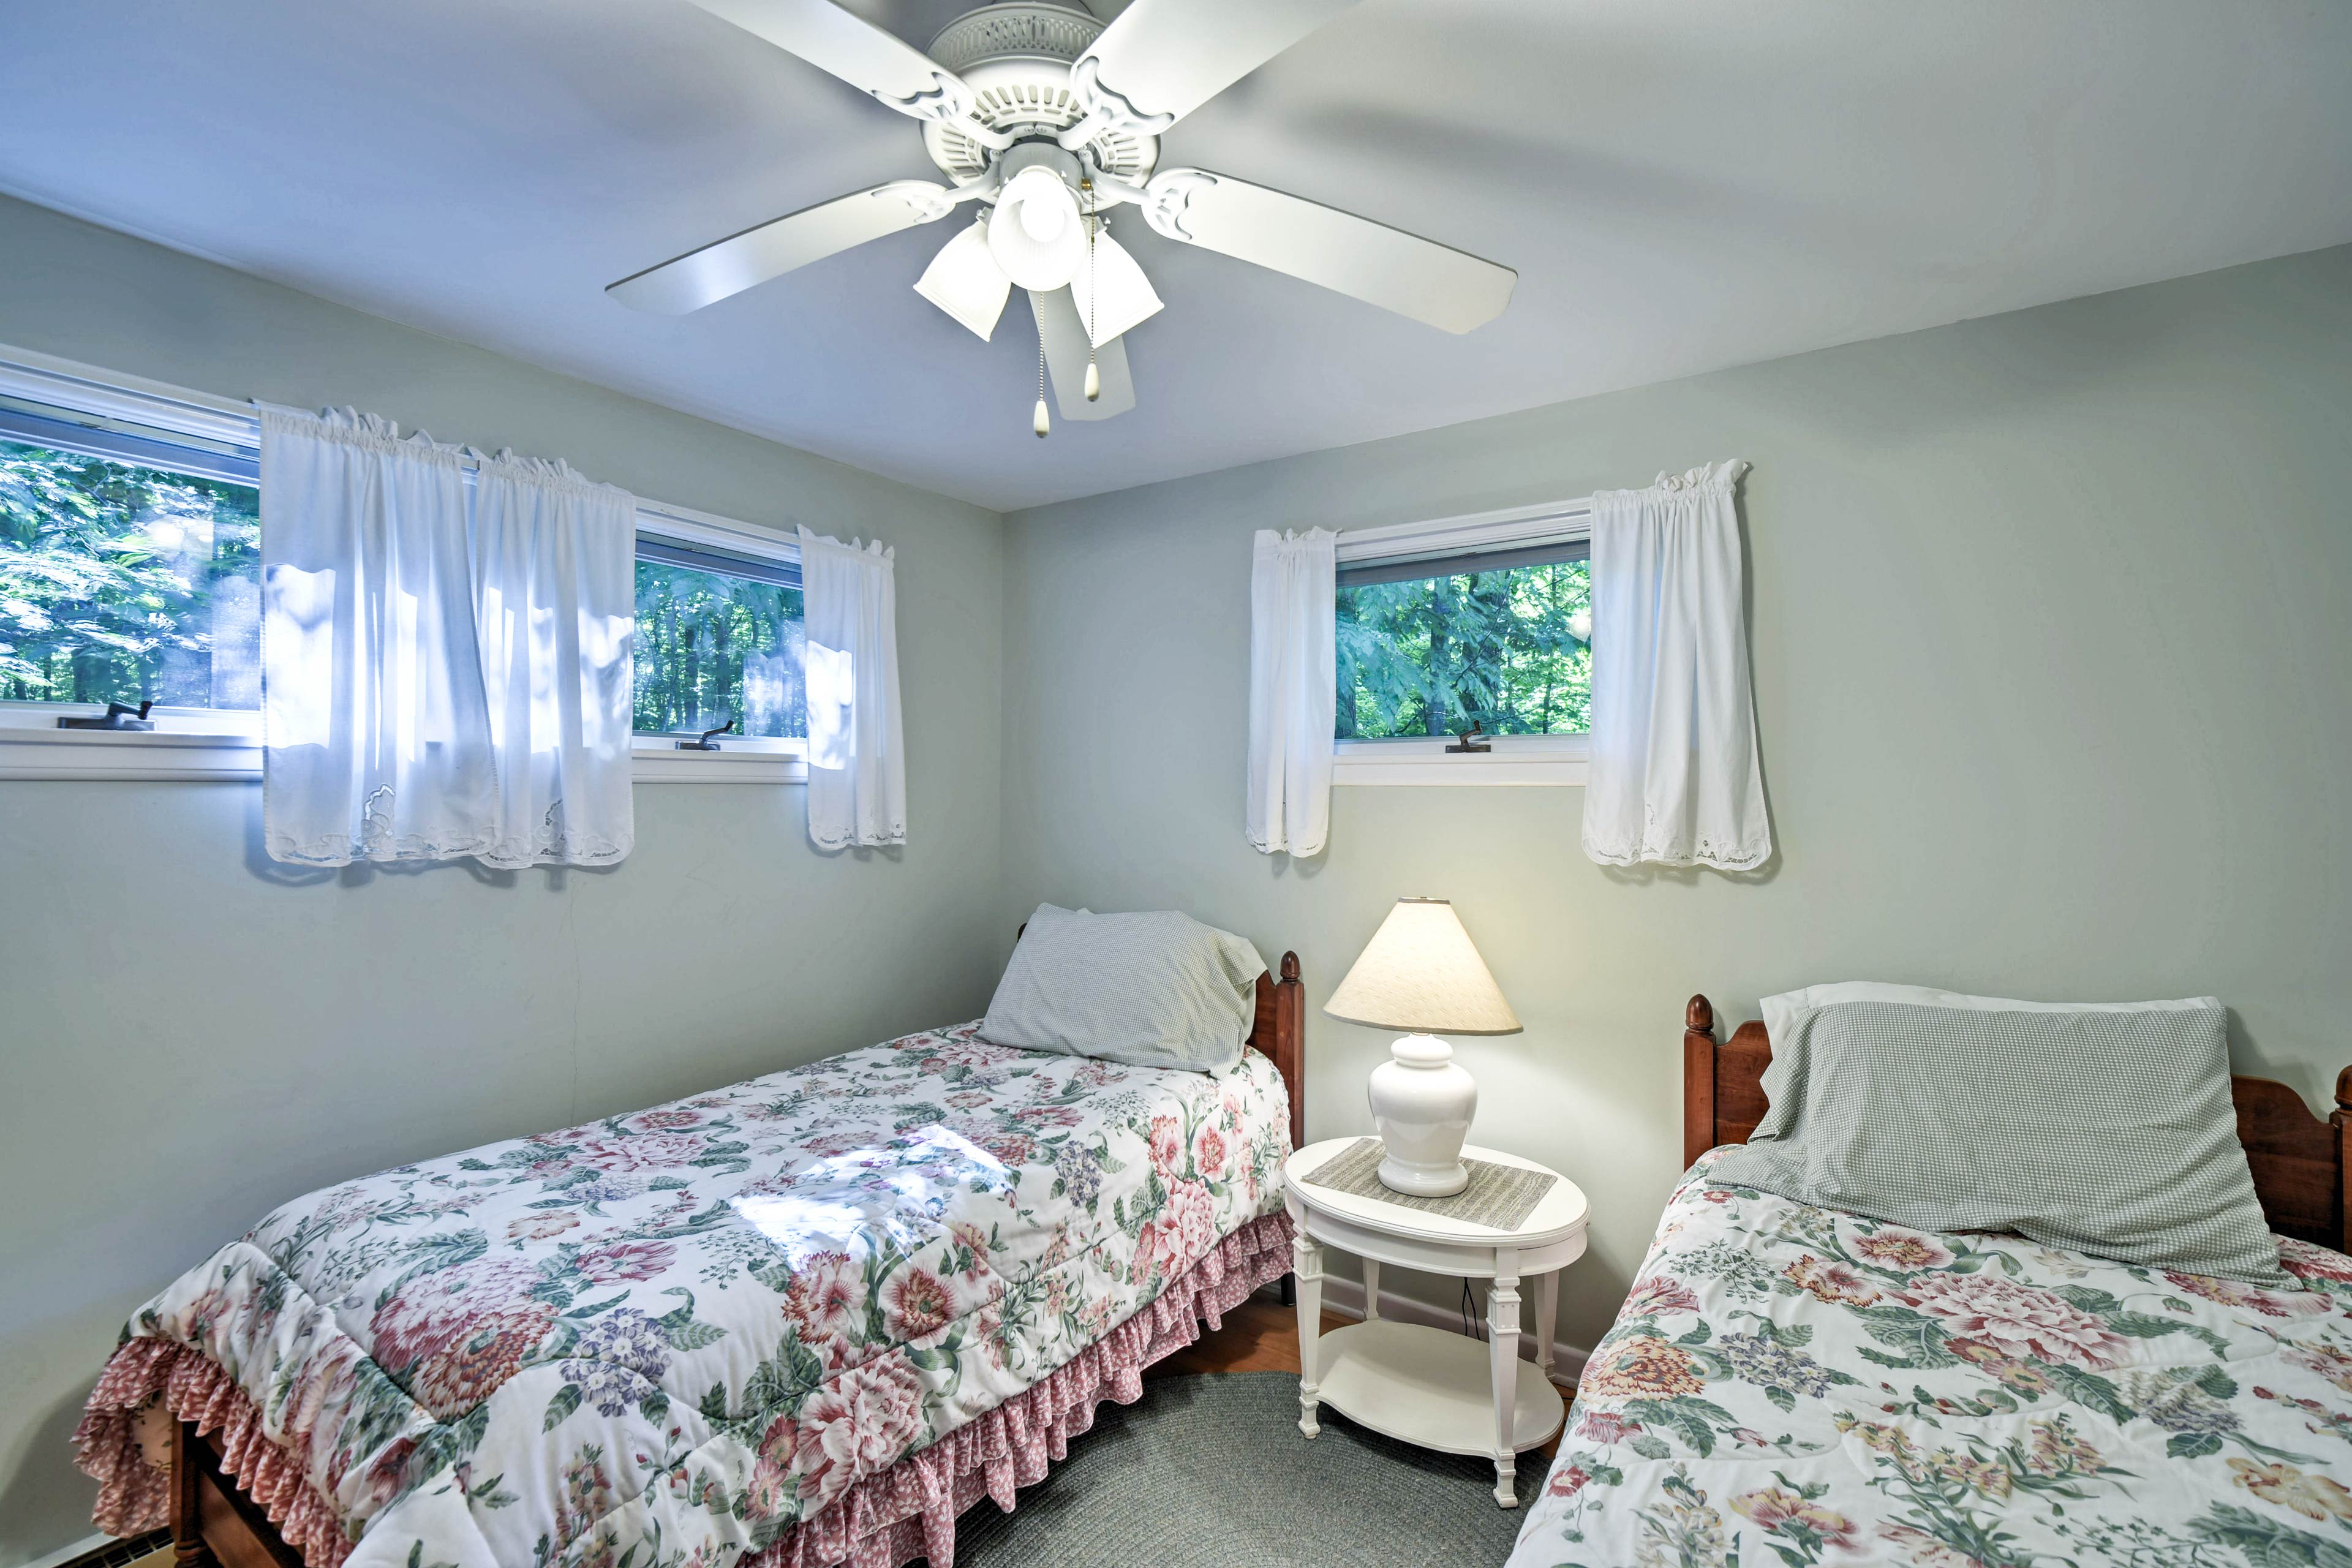 Two twin beds are provided in the second bedroom.